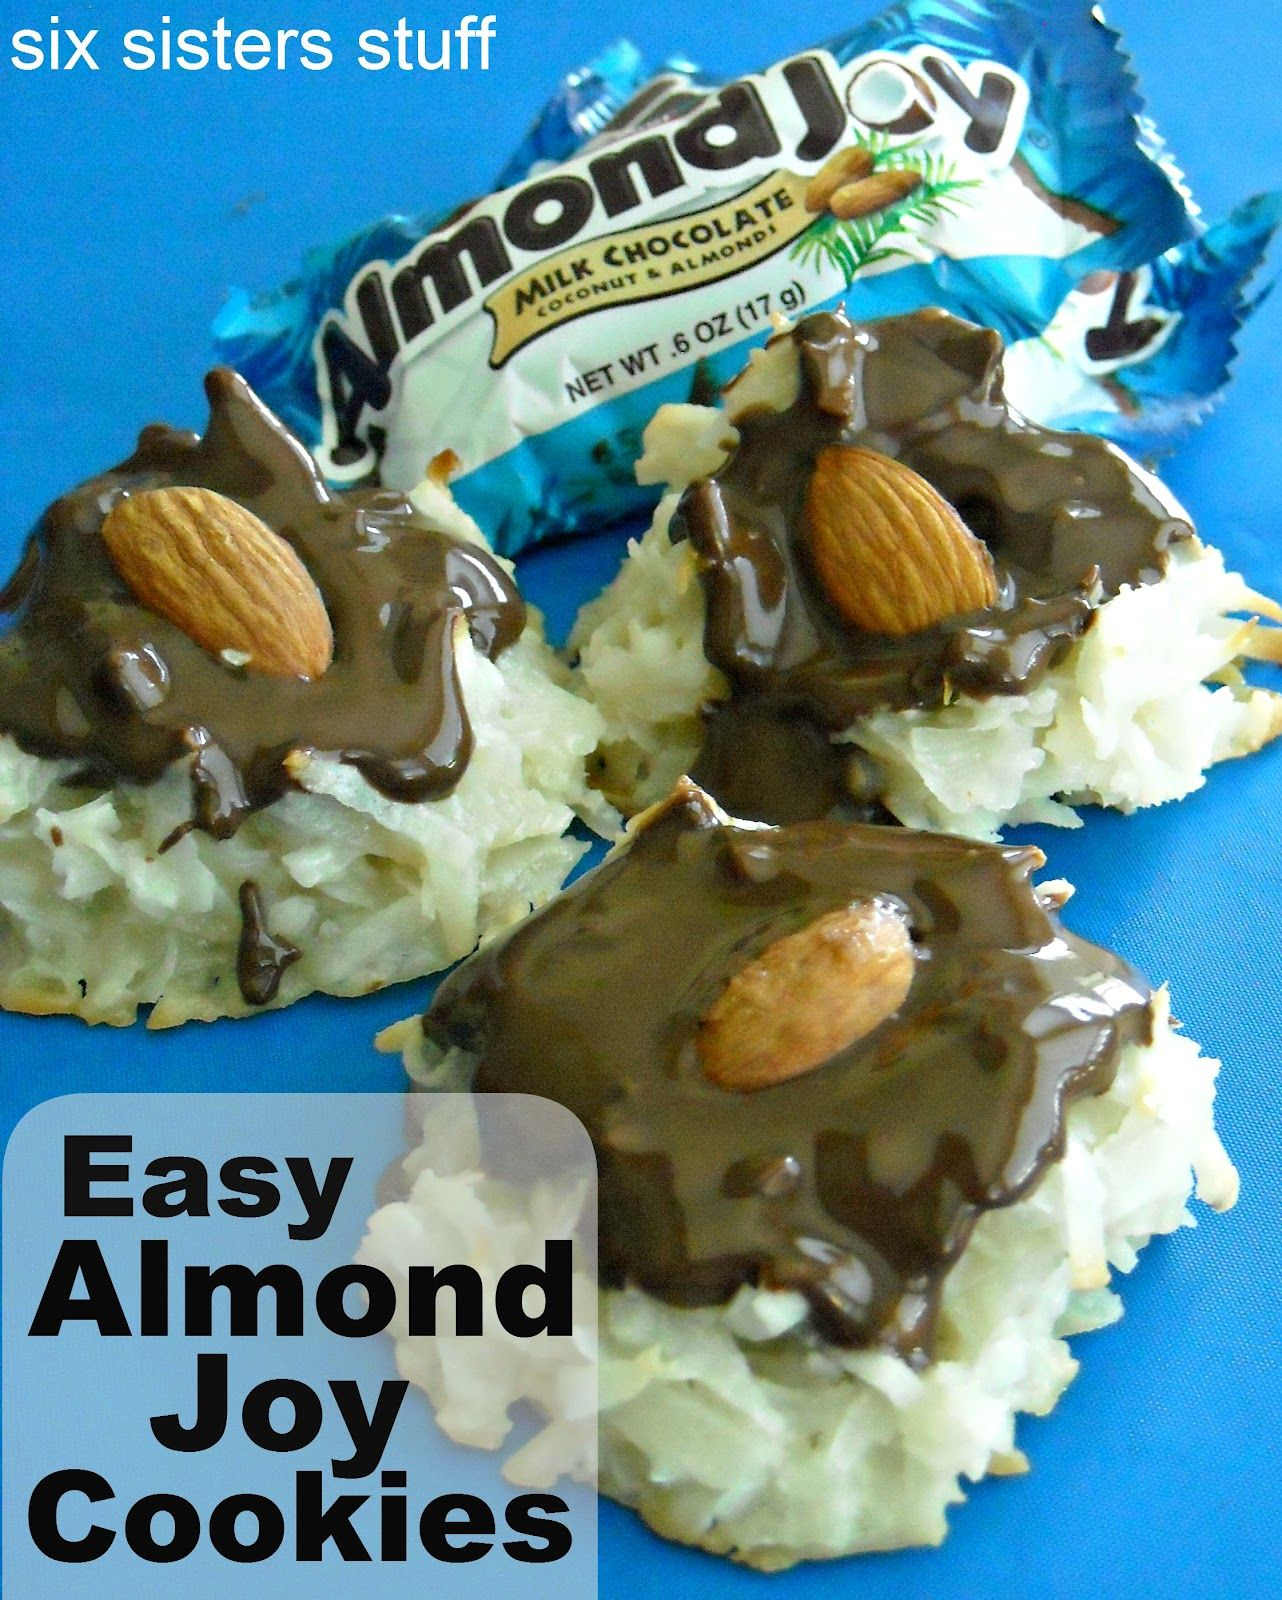 Six Sisters Cookies Six Sisters Stuff Easy Almond Joy Cookies Recipe Could Also